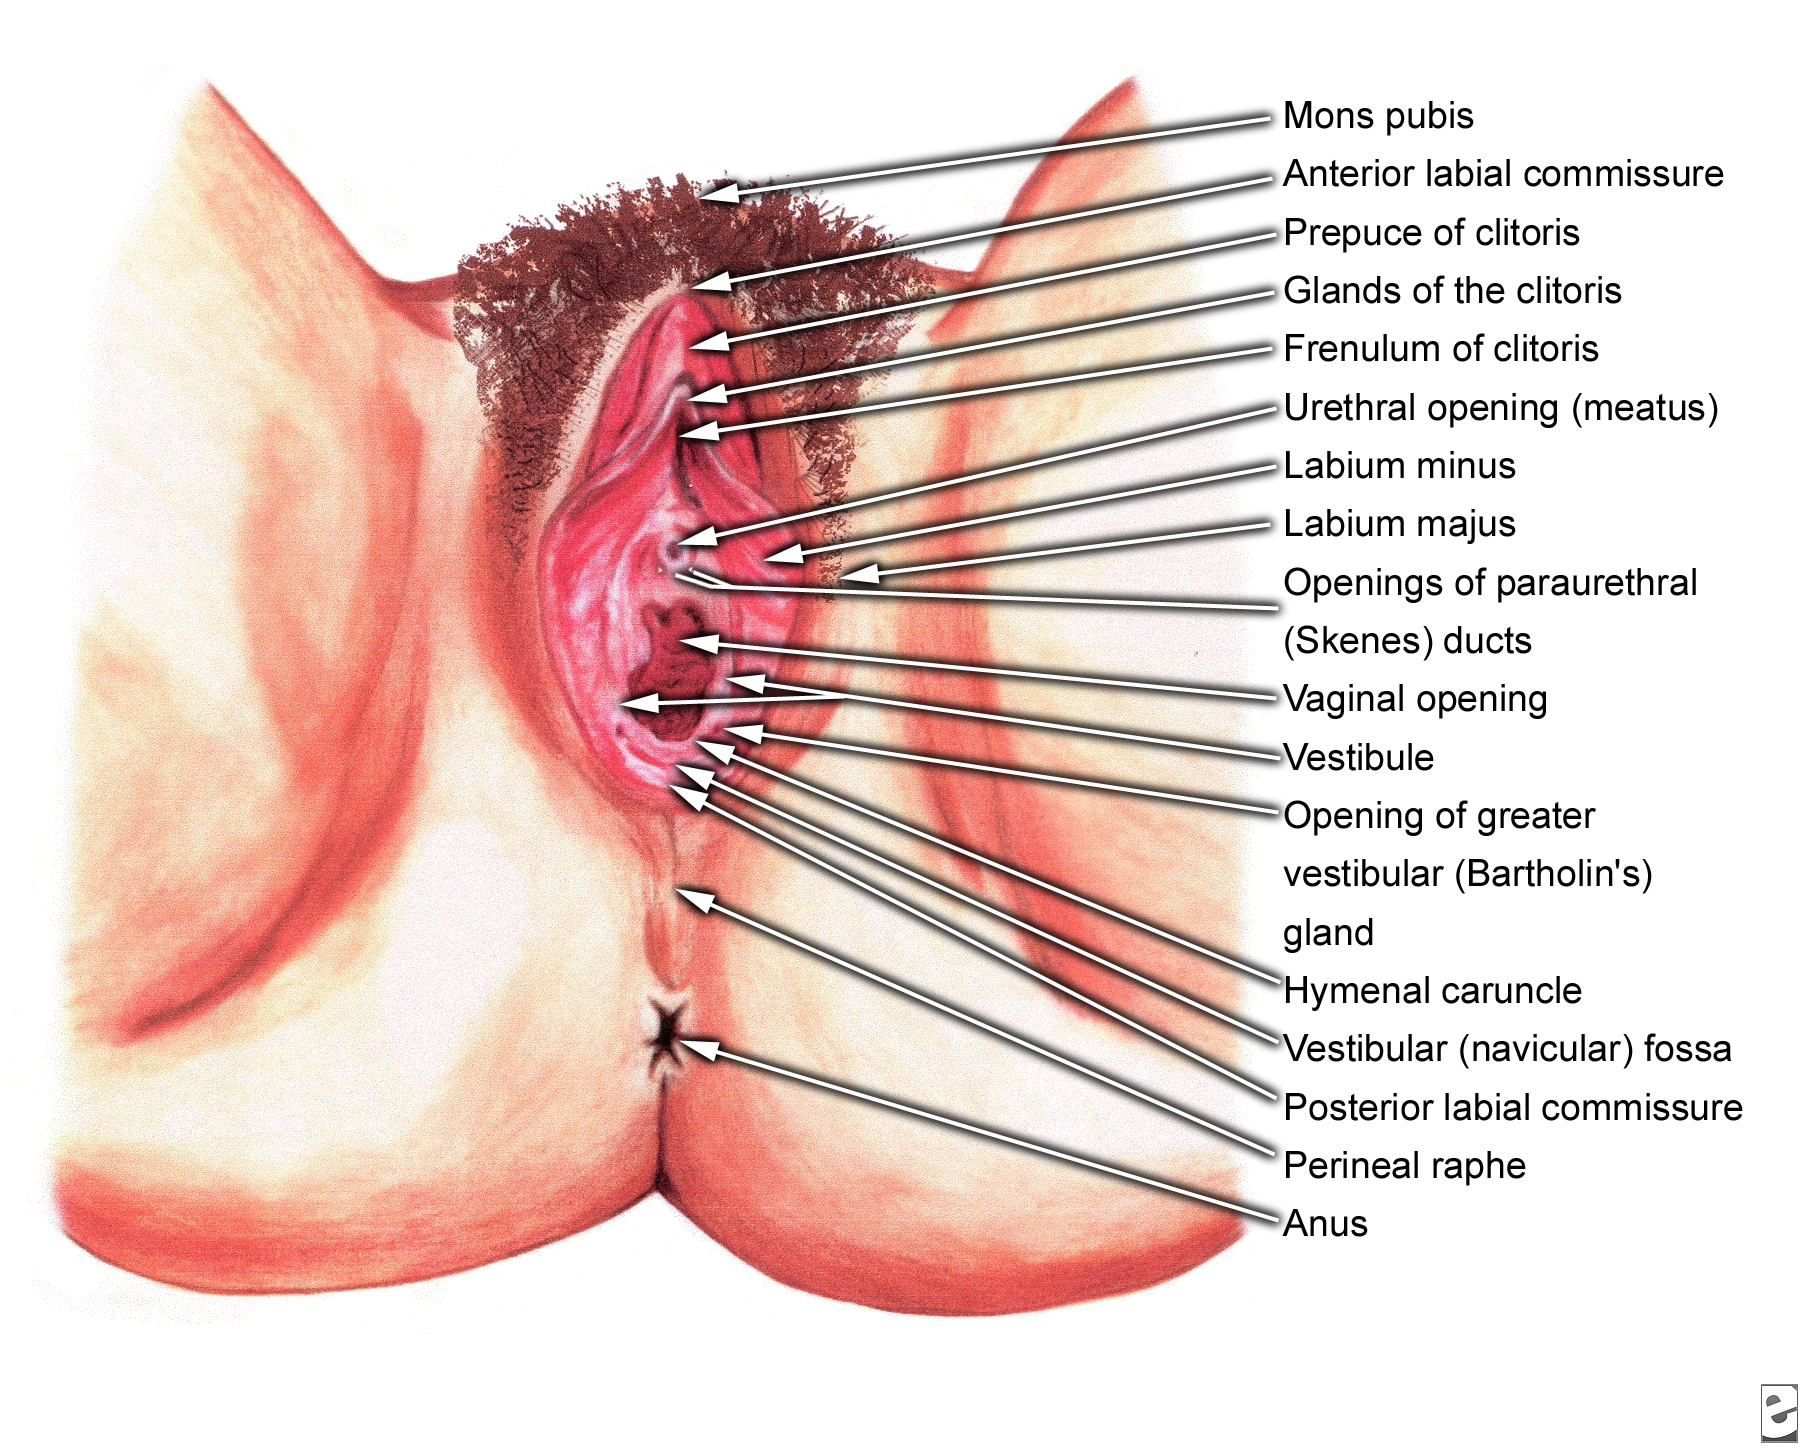 Female external genitalia, vagina - Normal - Vulva - Diagram, drawing